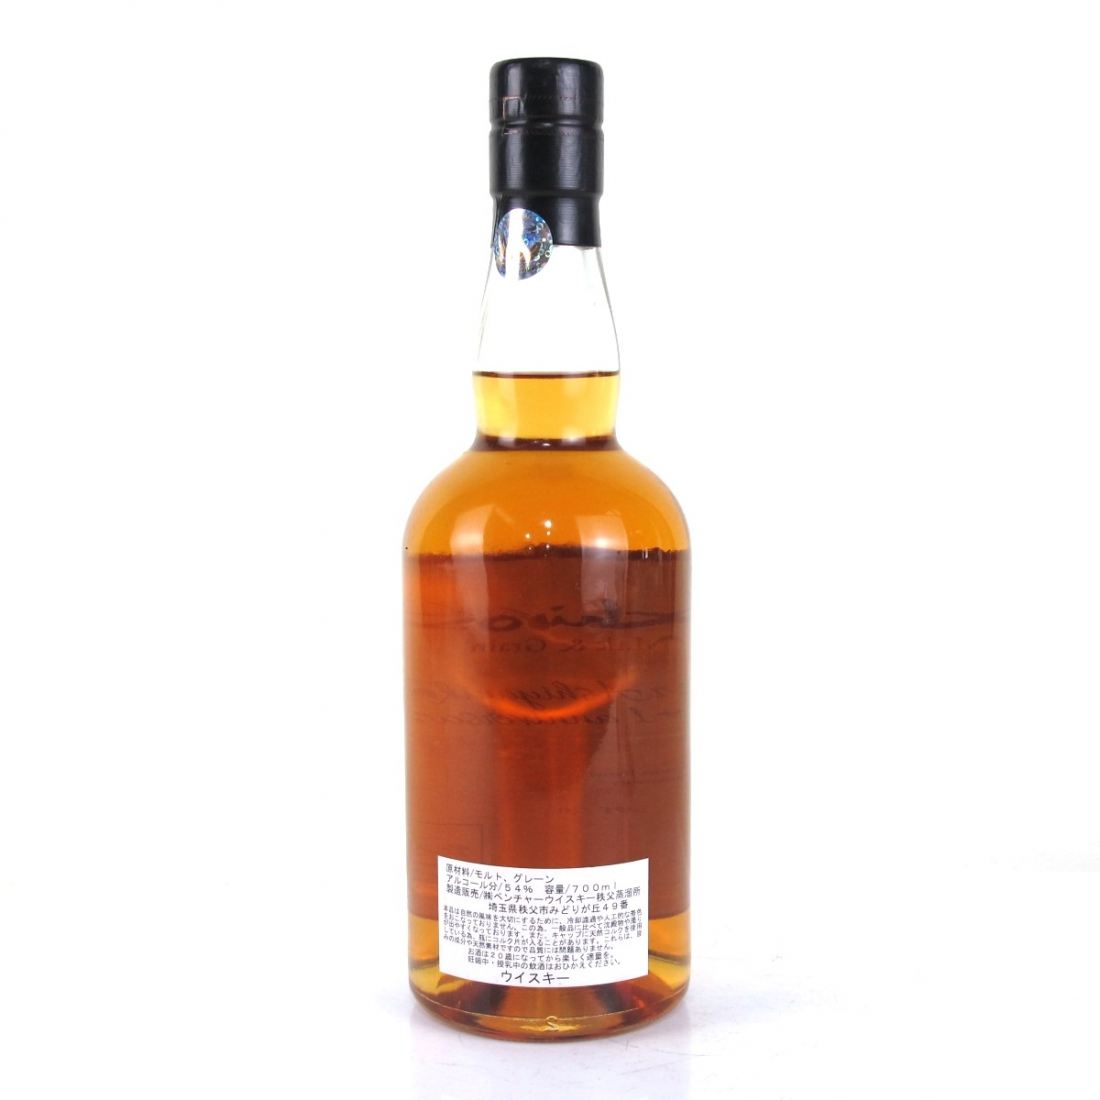 Ichiro's Malt and Grain Single Cask #5765 / Bar Ashiyanikki 30+1 Anniversary